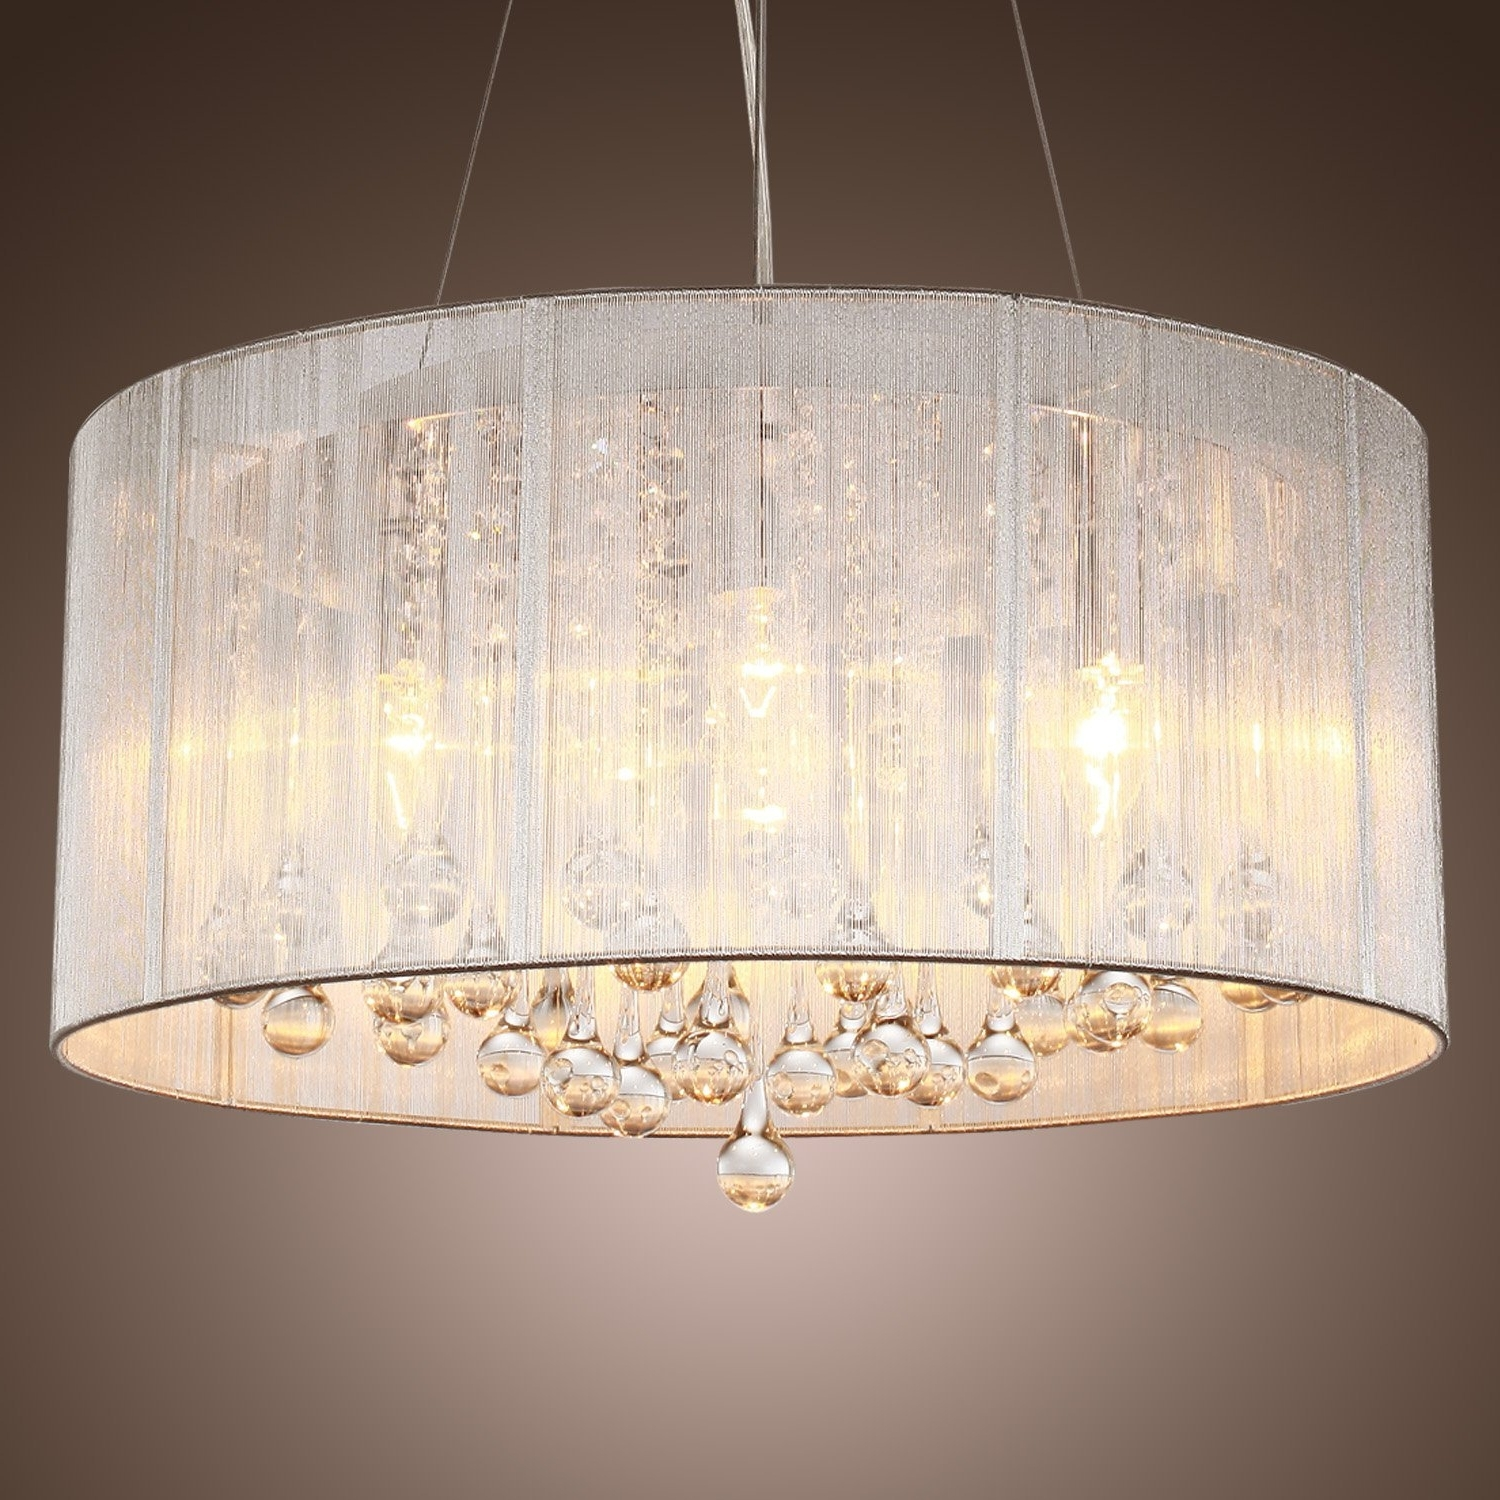 4 Light Crystal Chandeliers Intended For Best And Newest Lightinthebox Modern Silver Crystal Pendant Light In Cylinder Shade (View 6 of 15)